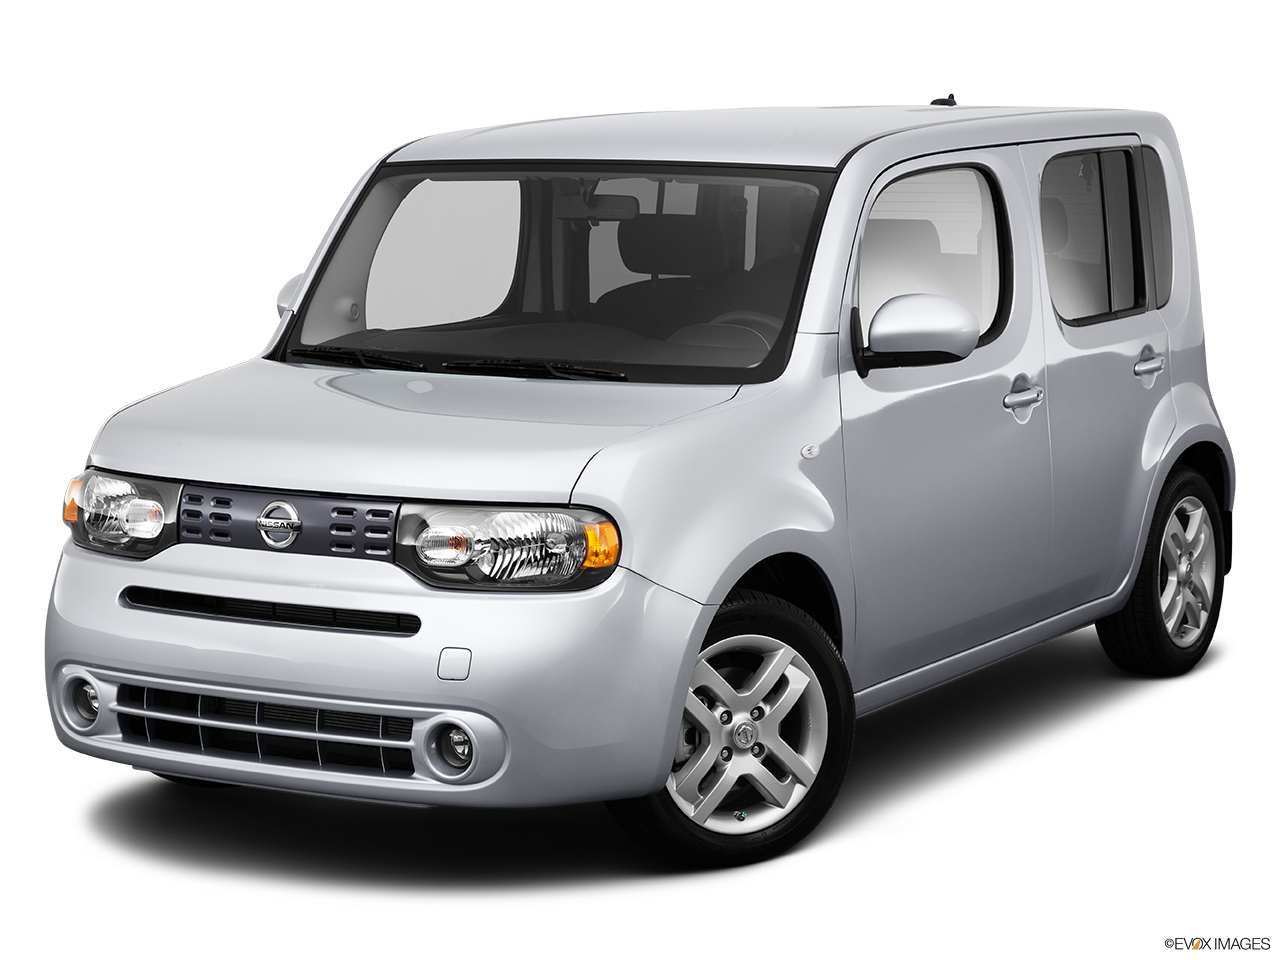 2014 nissan cube wagon cvt s. Black Bedroom Furniture Sets. Home Design Ideas